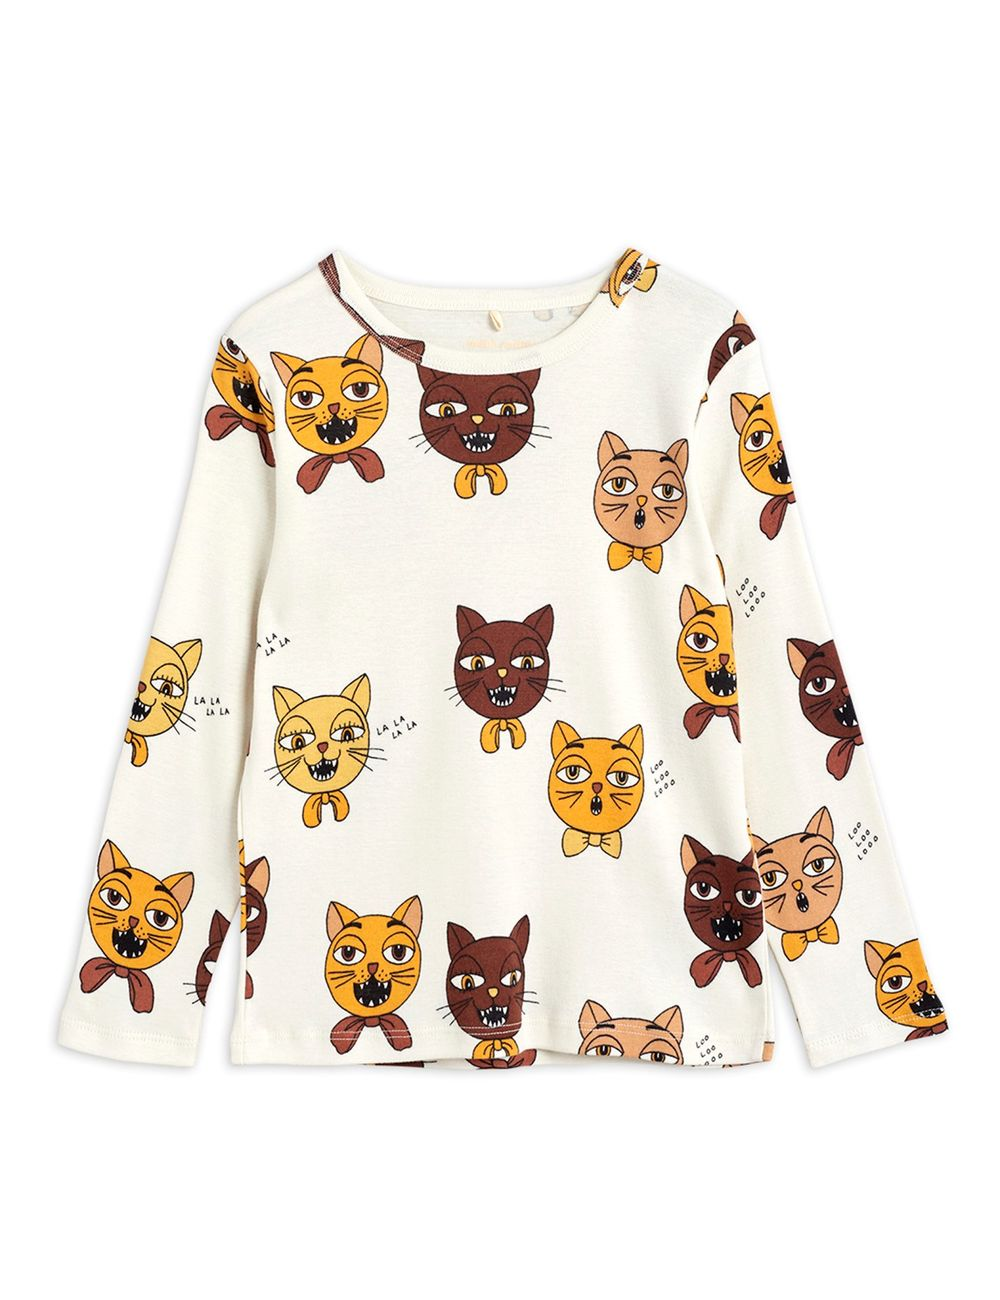 MINI RODINI CAT CHOIR AOP LS TEE, OFFWHI